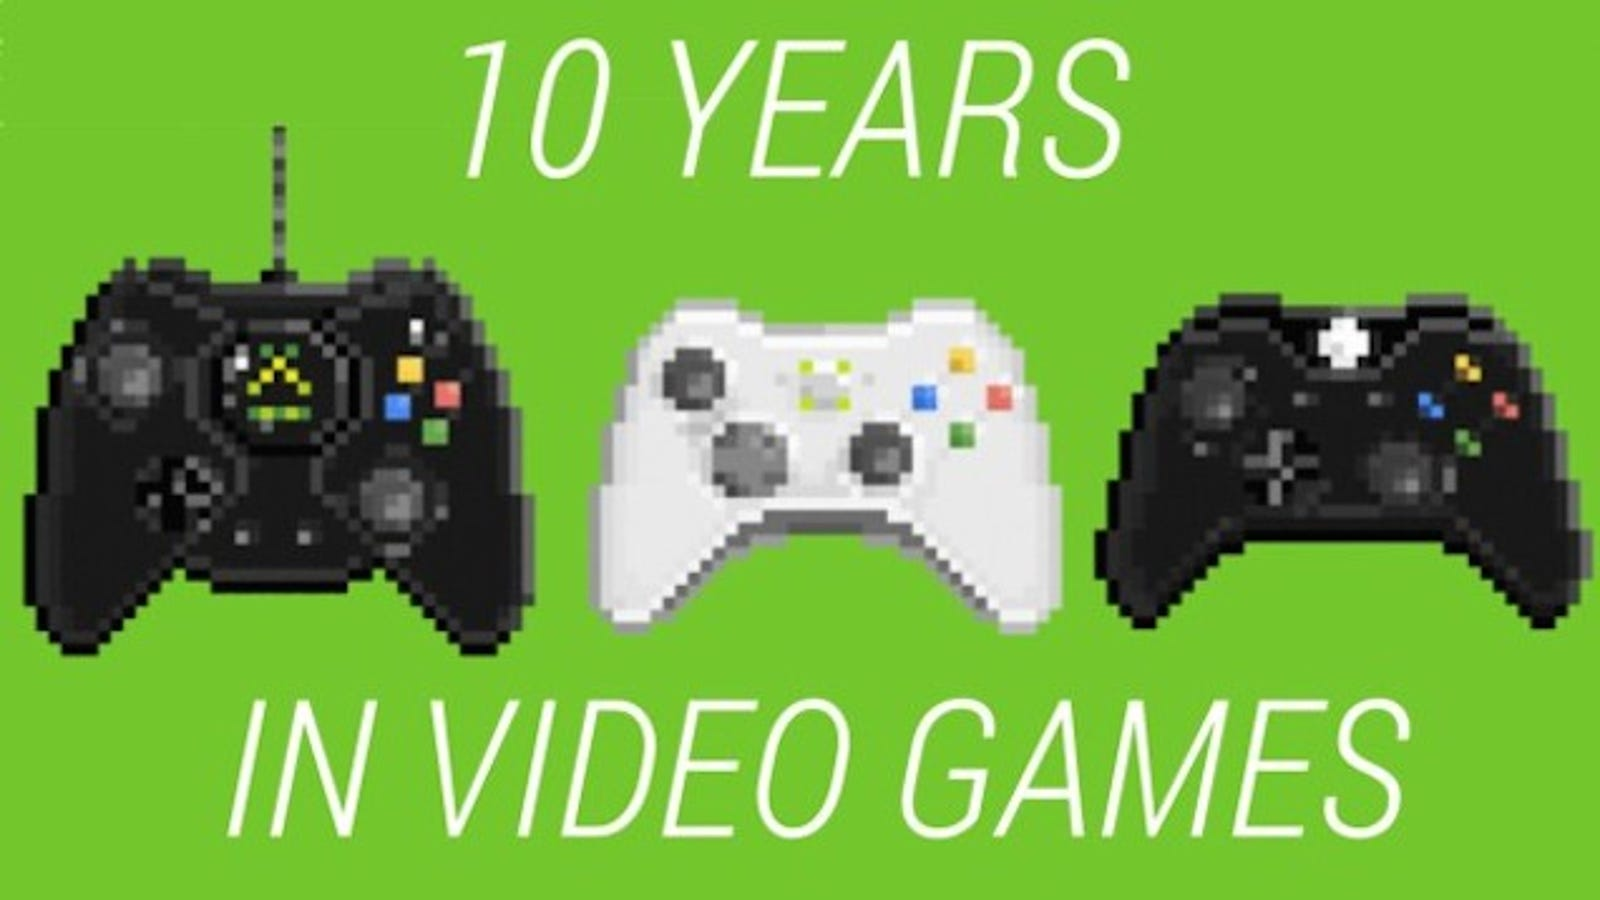 Progressive Near Me >> The 10 Biggest Changes of The Last 10 Years in Video Games